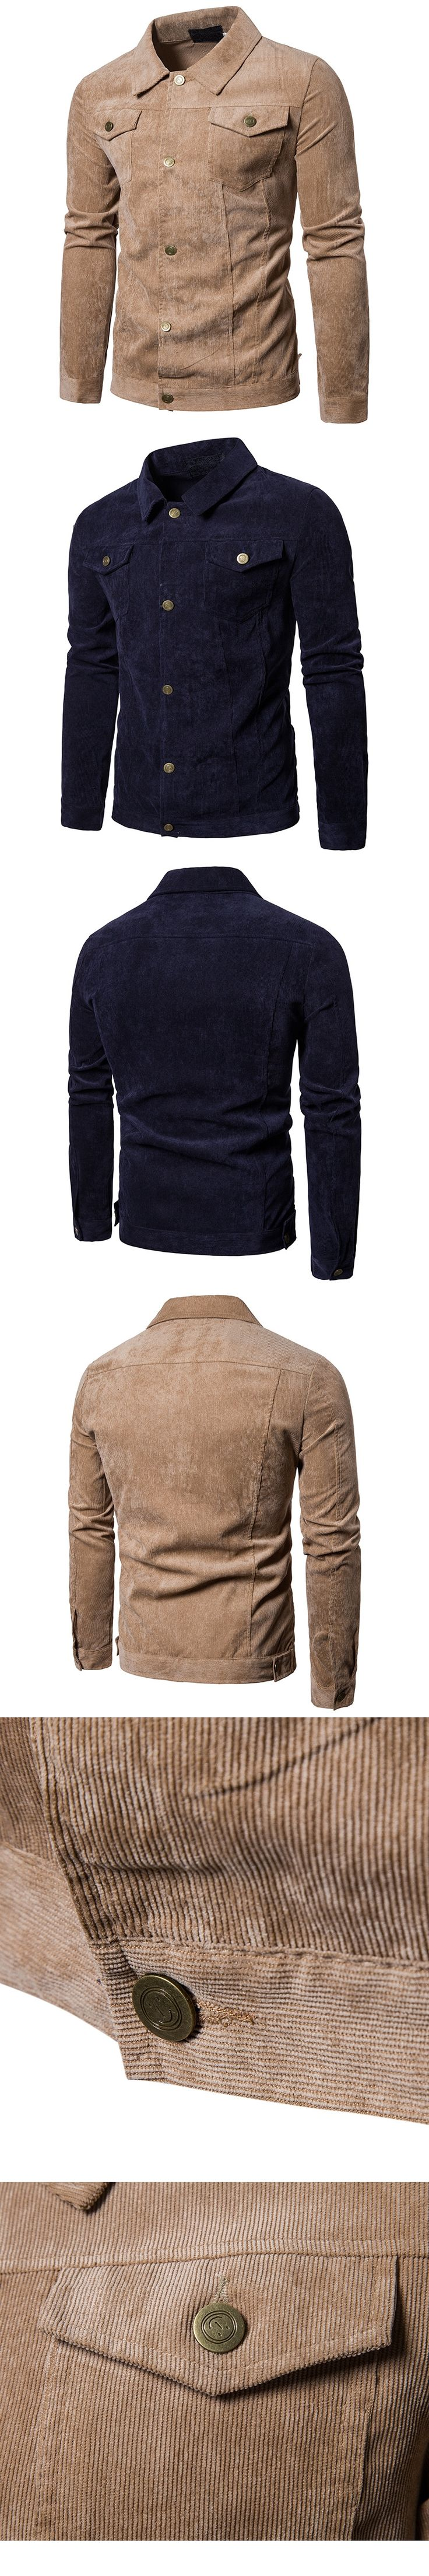 Mens Chinese Tunic Suit Style Corduroy Jacket | 2017 Winter Brand New Male Solid Thick Lines Warm Jacket Mens Casual Streetwear